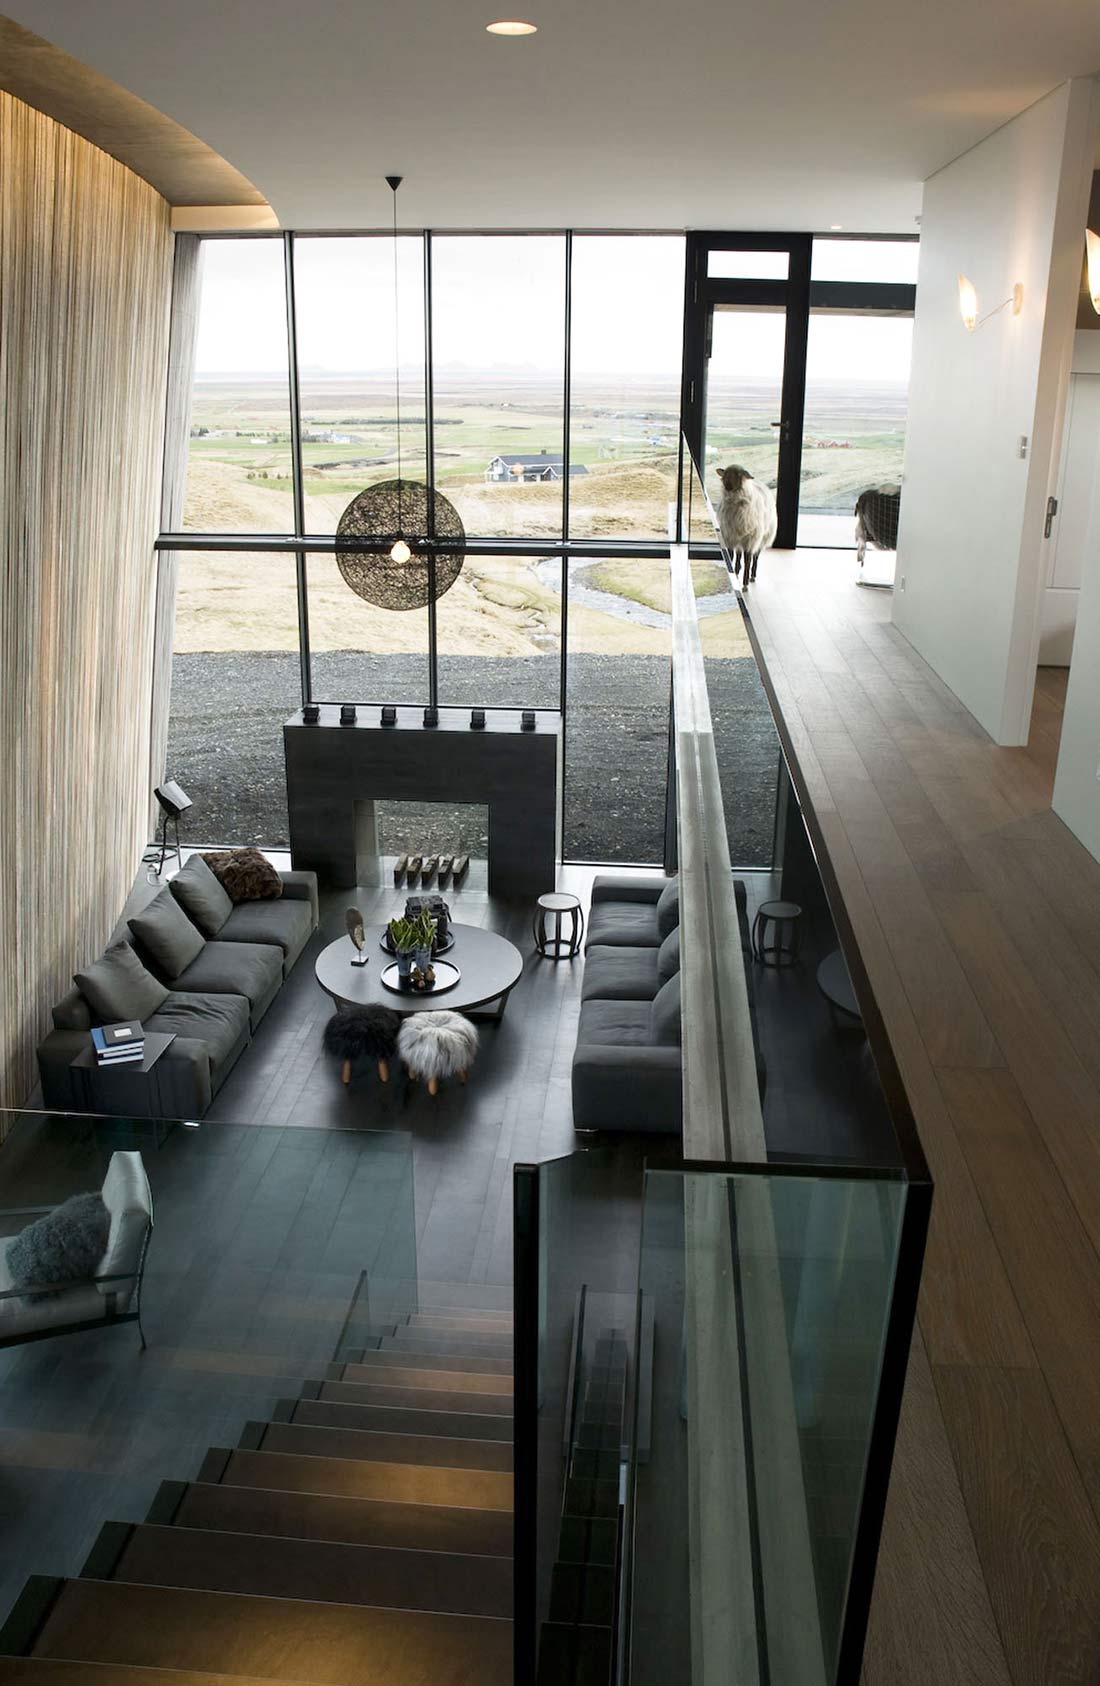 Landing, Living Space, Vacation Home in Iceland Inspired by Nature